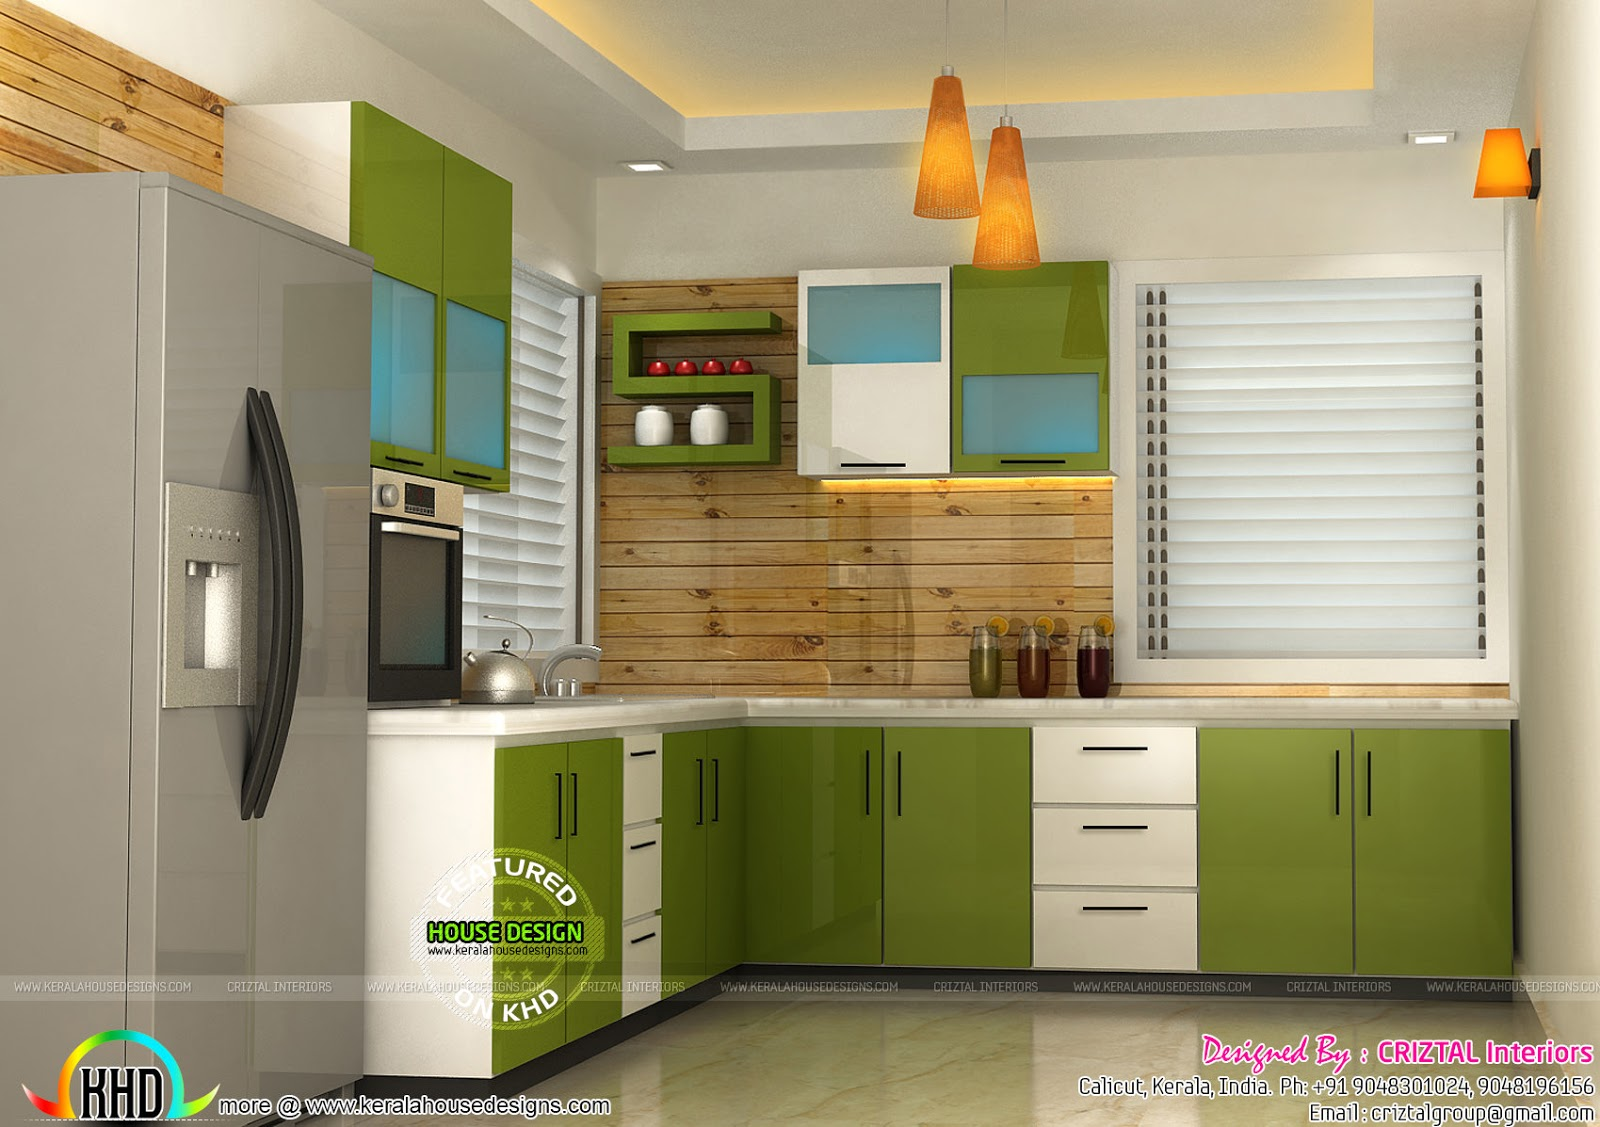 Bedroom And Kitchen Interiors By Criztal Interiors Kerala Home Design And Floor Plans